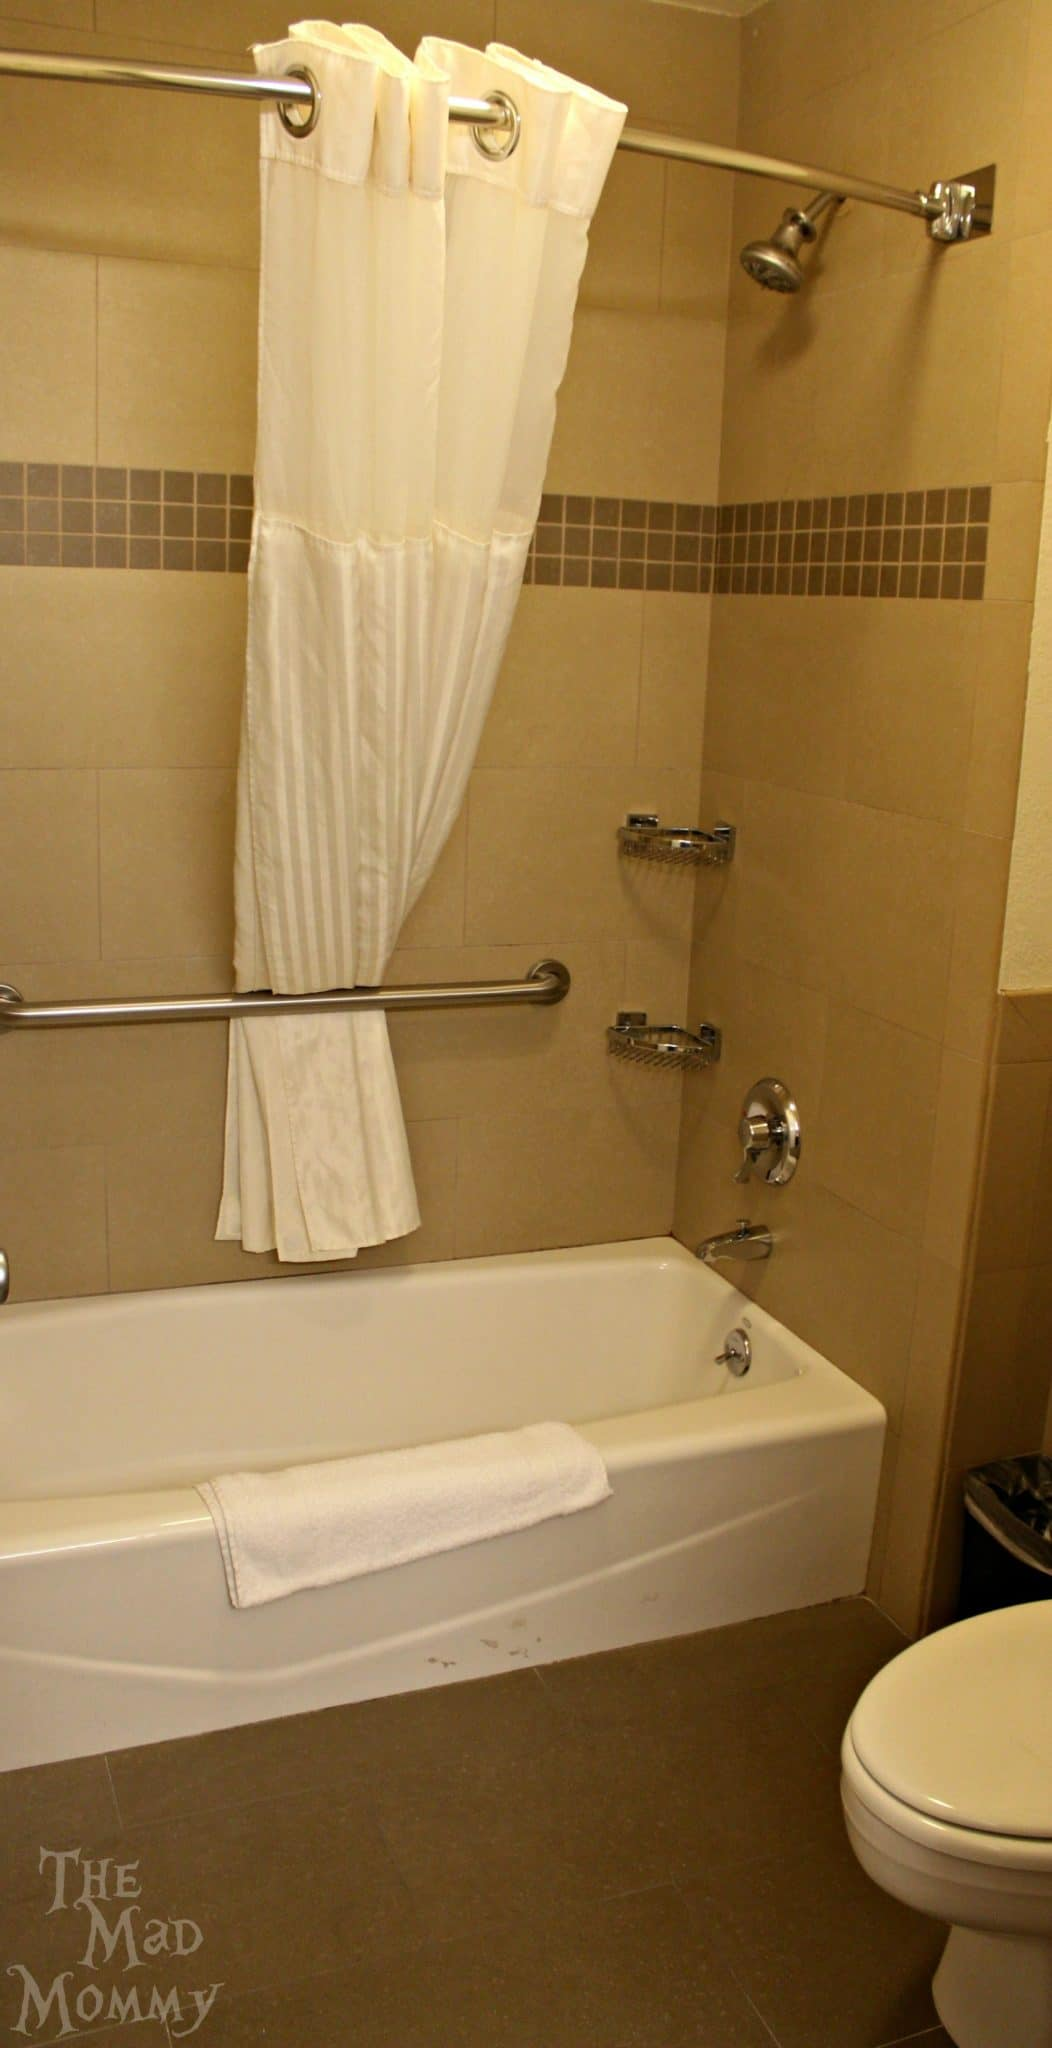 Bathroom in a standard room at the Best Western Plus Orange County North in Santa Ana, California.